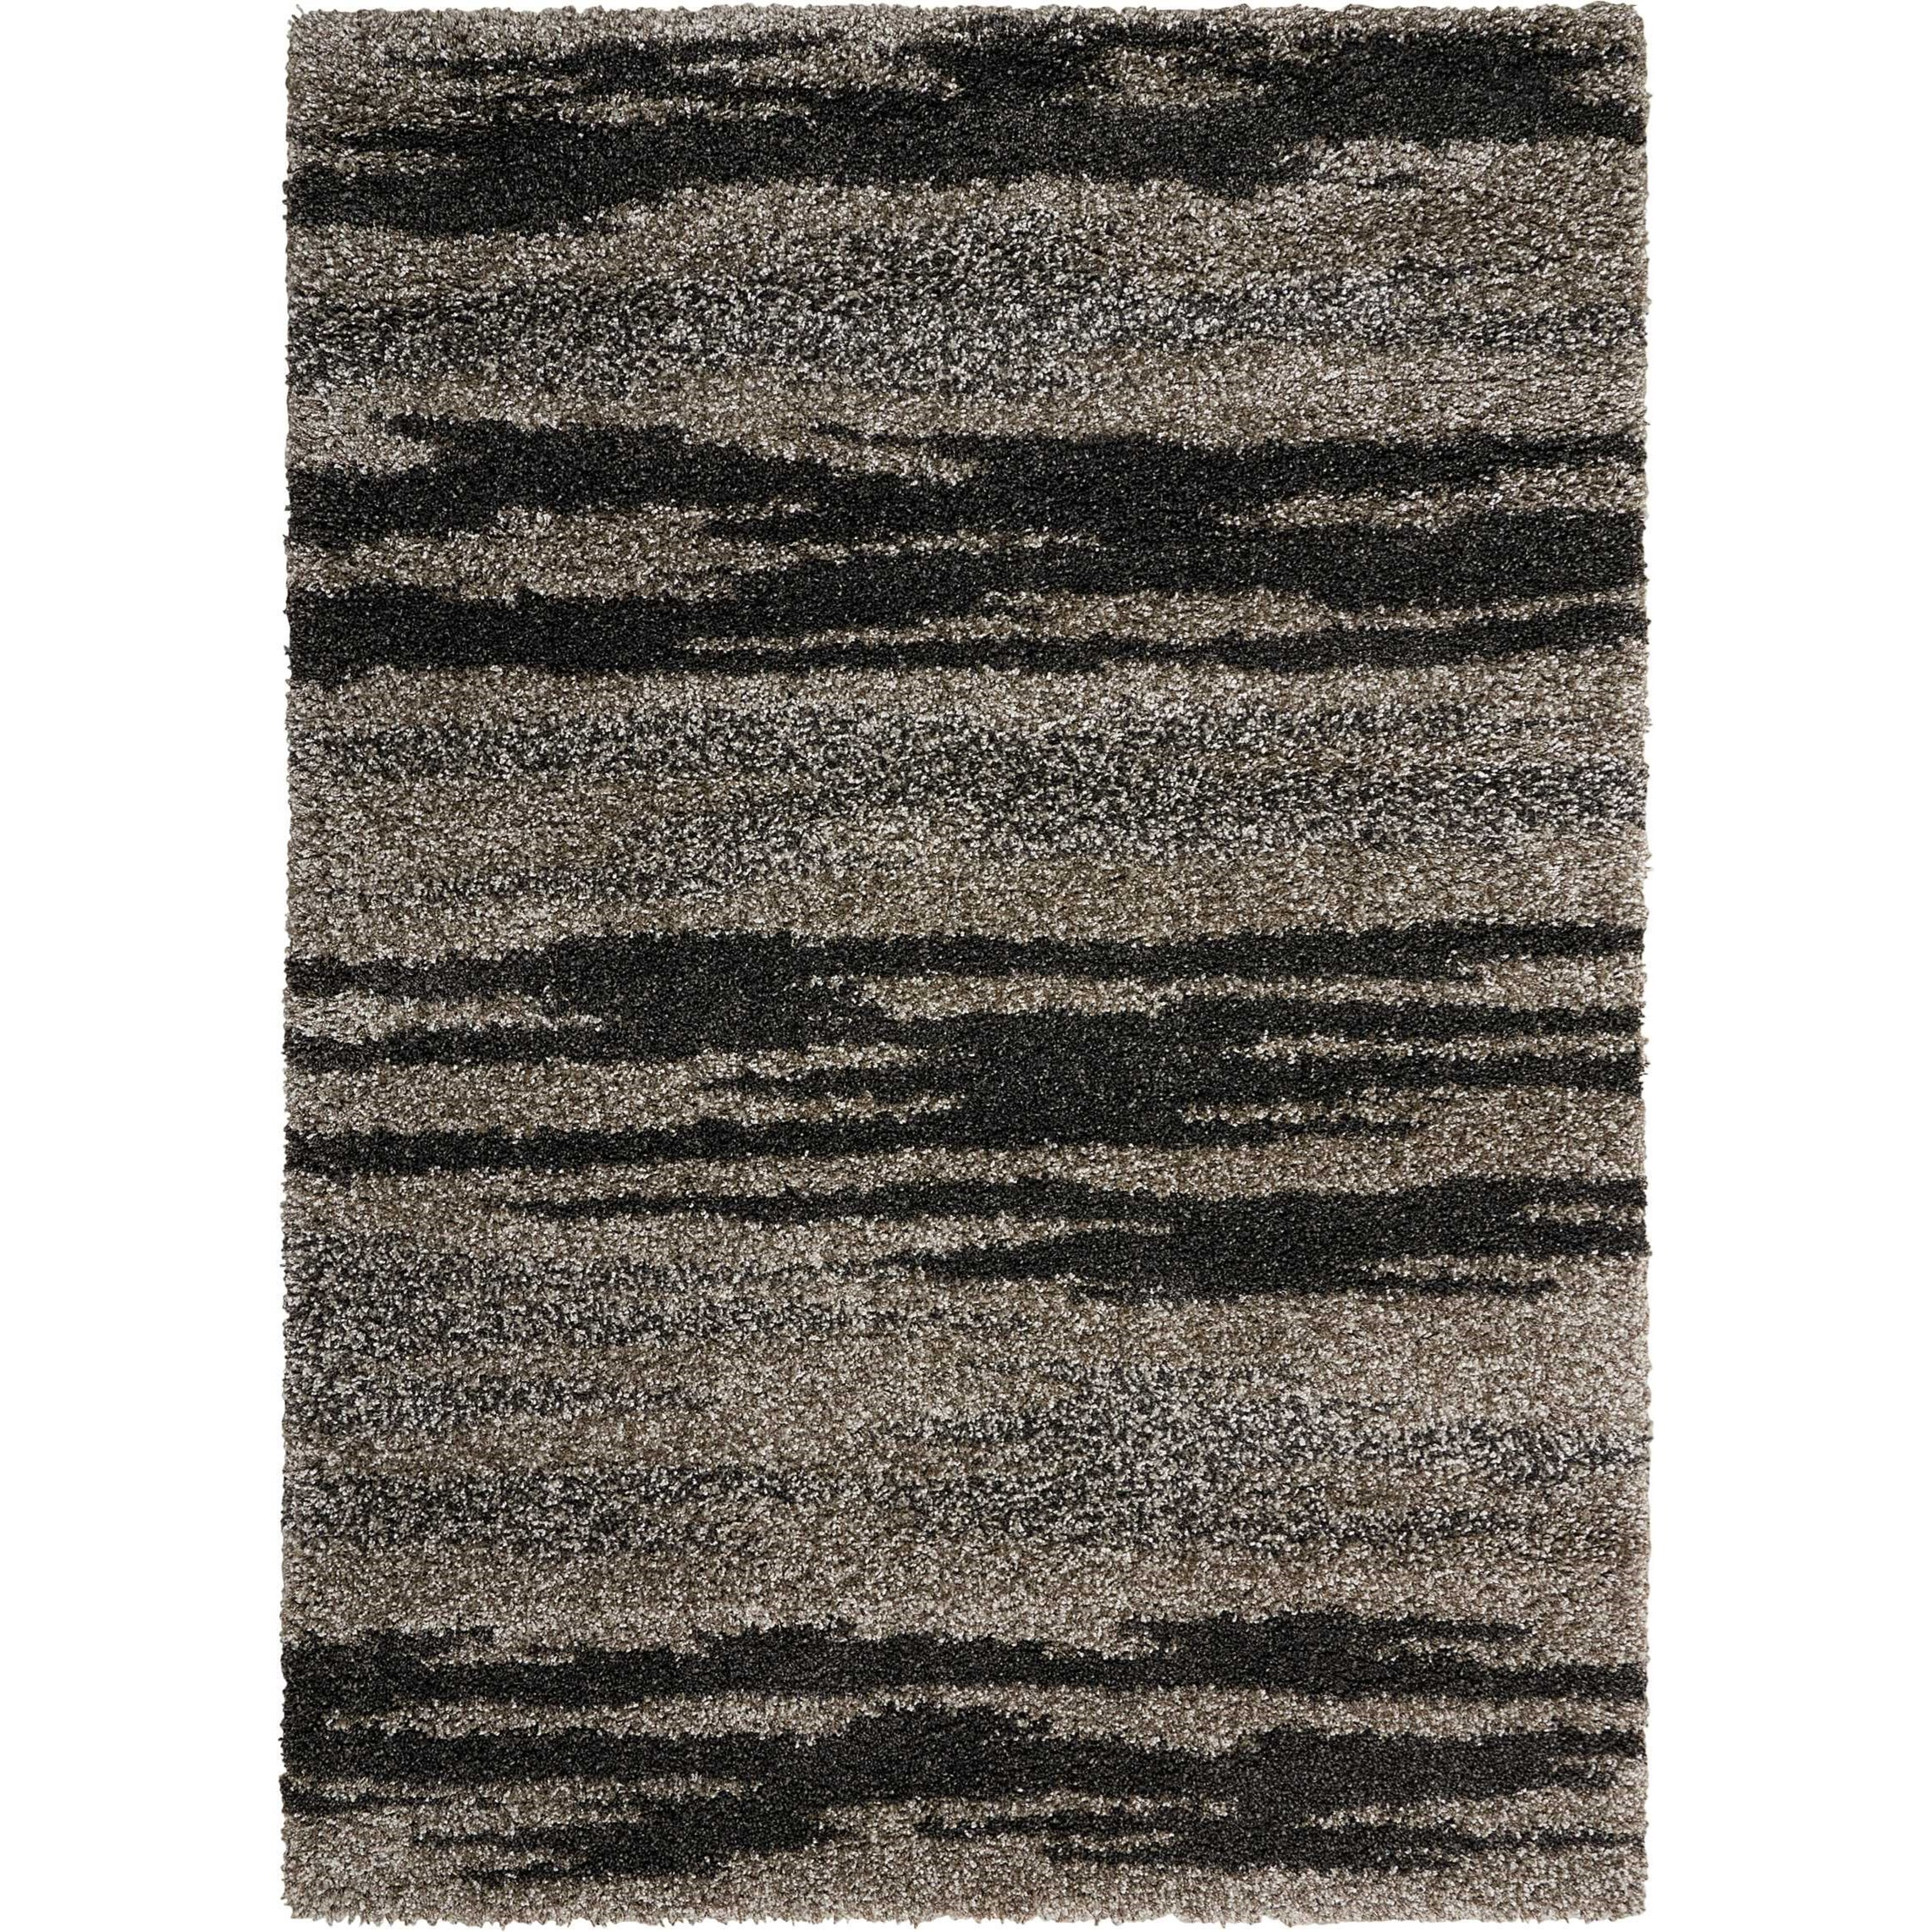 Amore Amore AMOR3 Grey 4'x6' Area Rug by Nourison at Home Collections Furniture